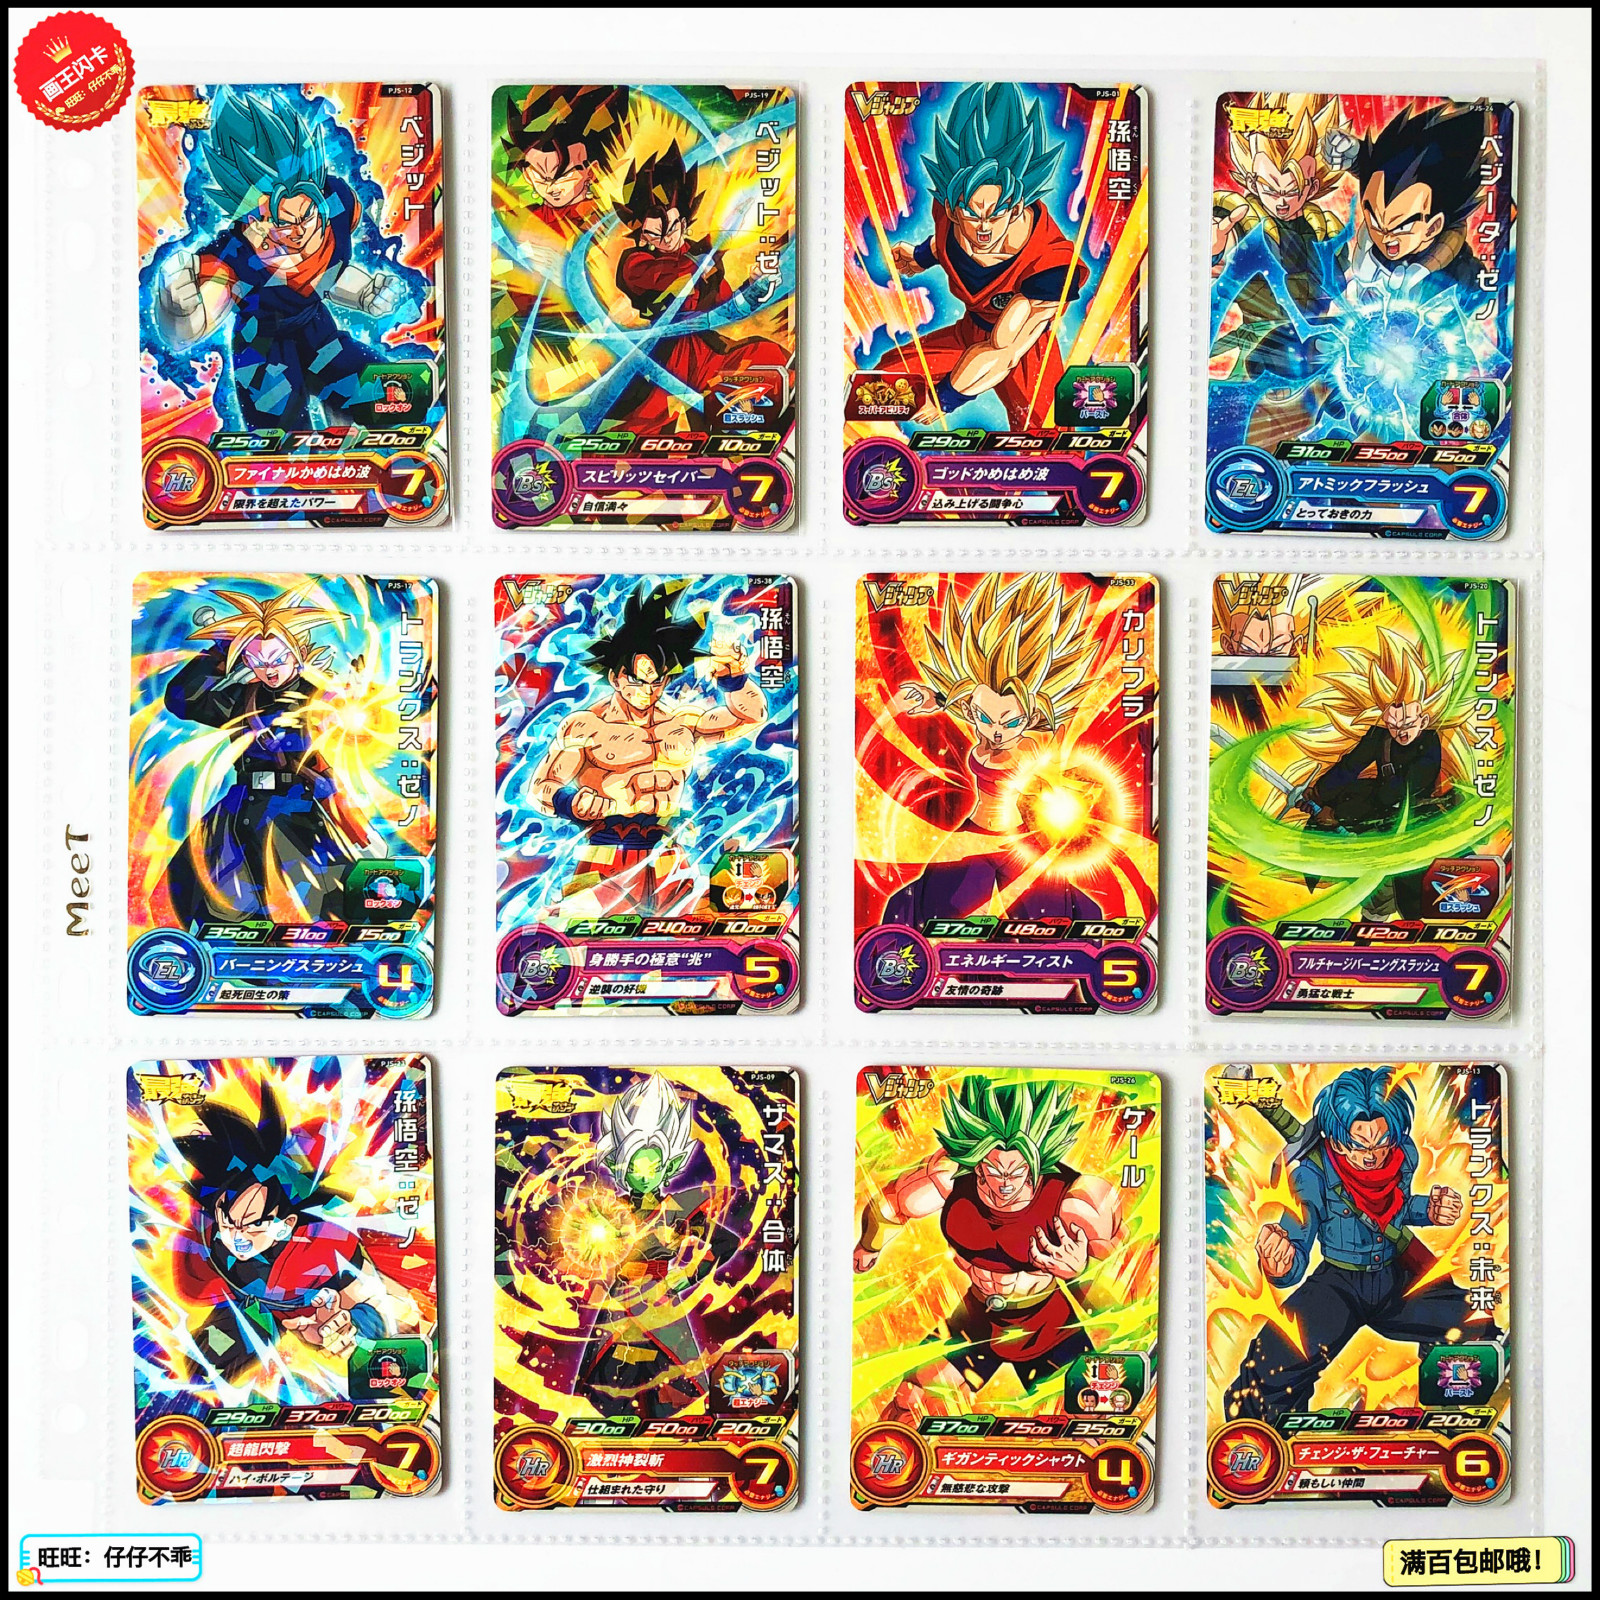 Japan Original Dragon Ball Hero PJS Caulifla God Super Saiyan Goku Kale Toys Hobbies Collectibles Game Collection Anime Cards